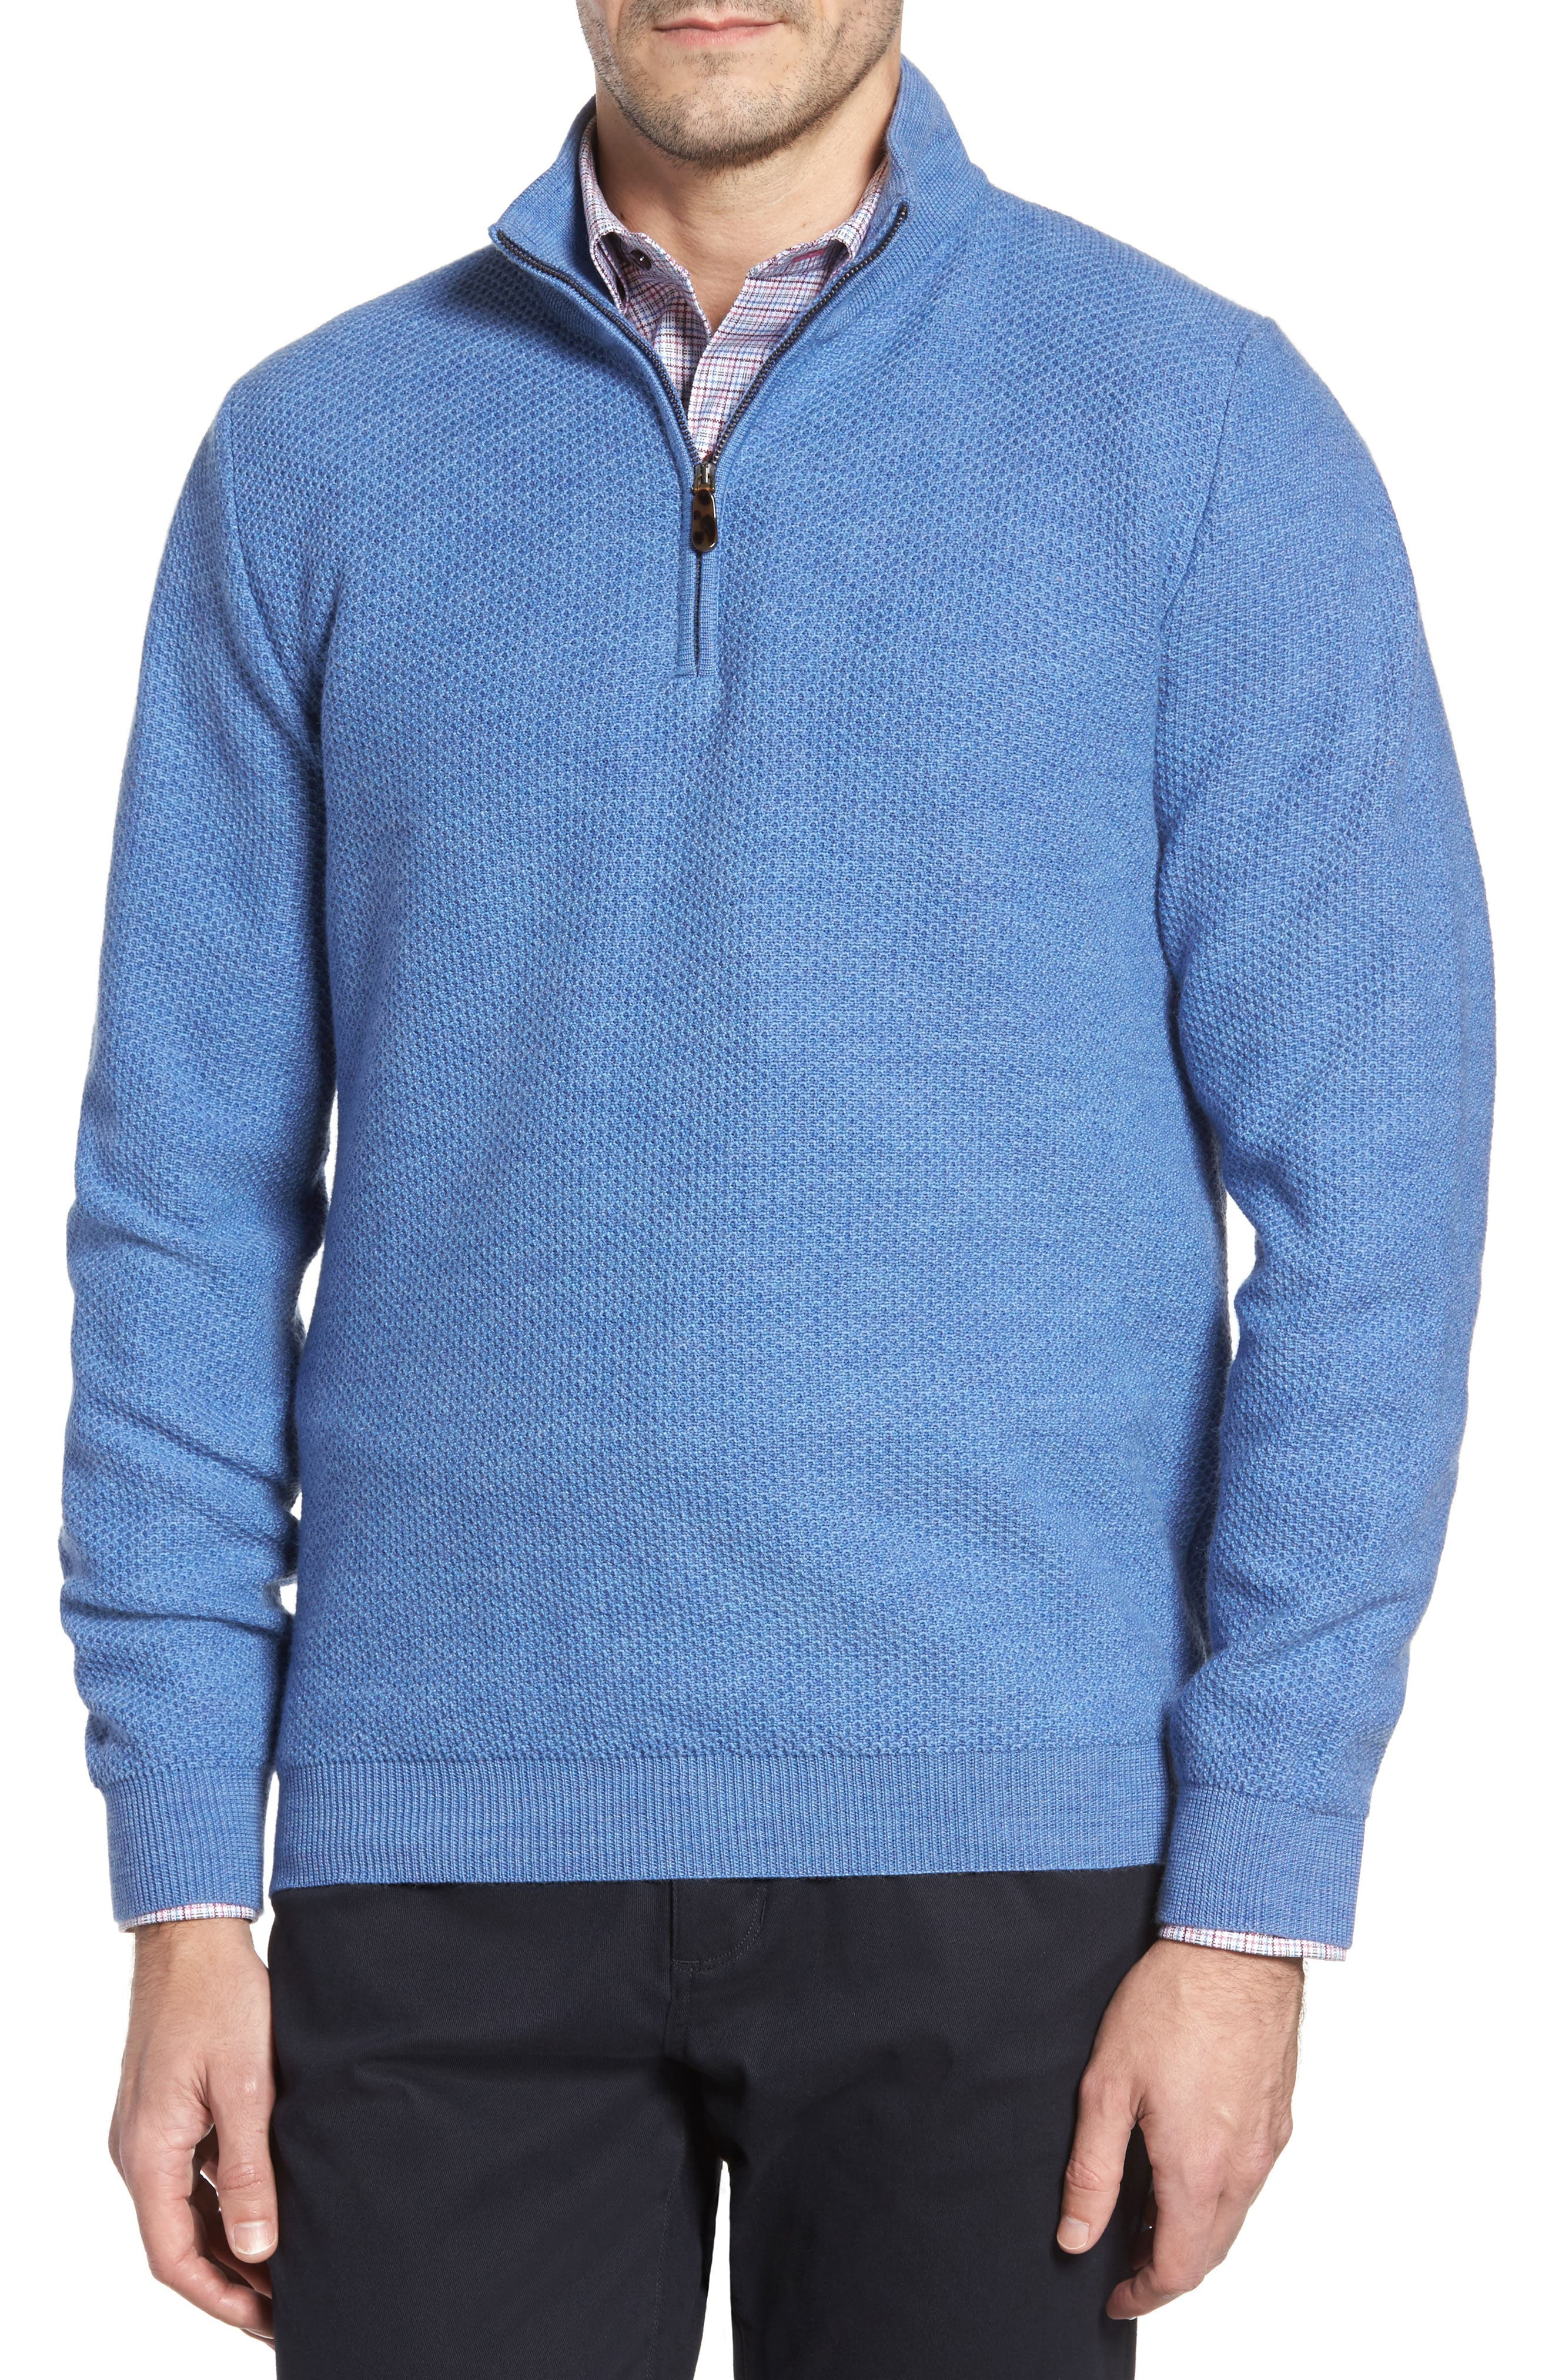 David Donahue Honeycomb Merino Wool Quarter Zip Pullover